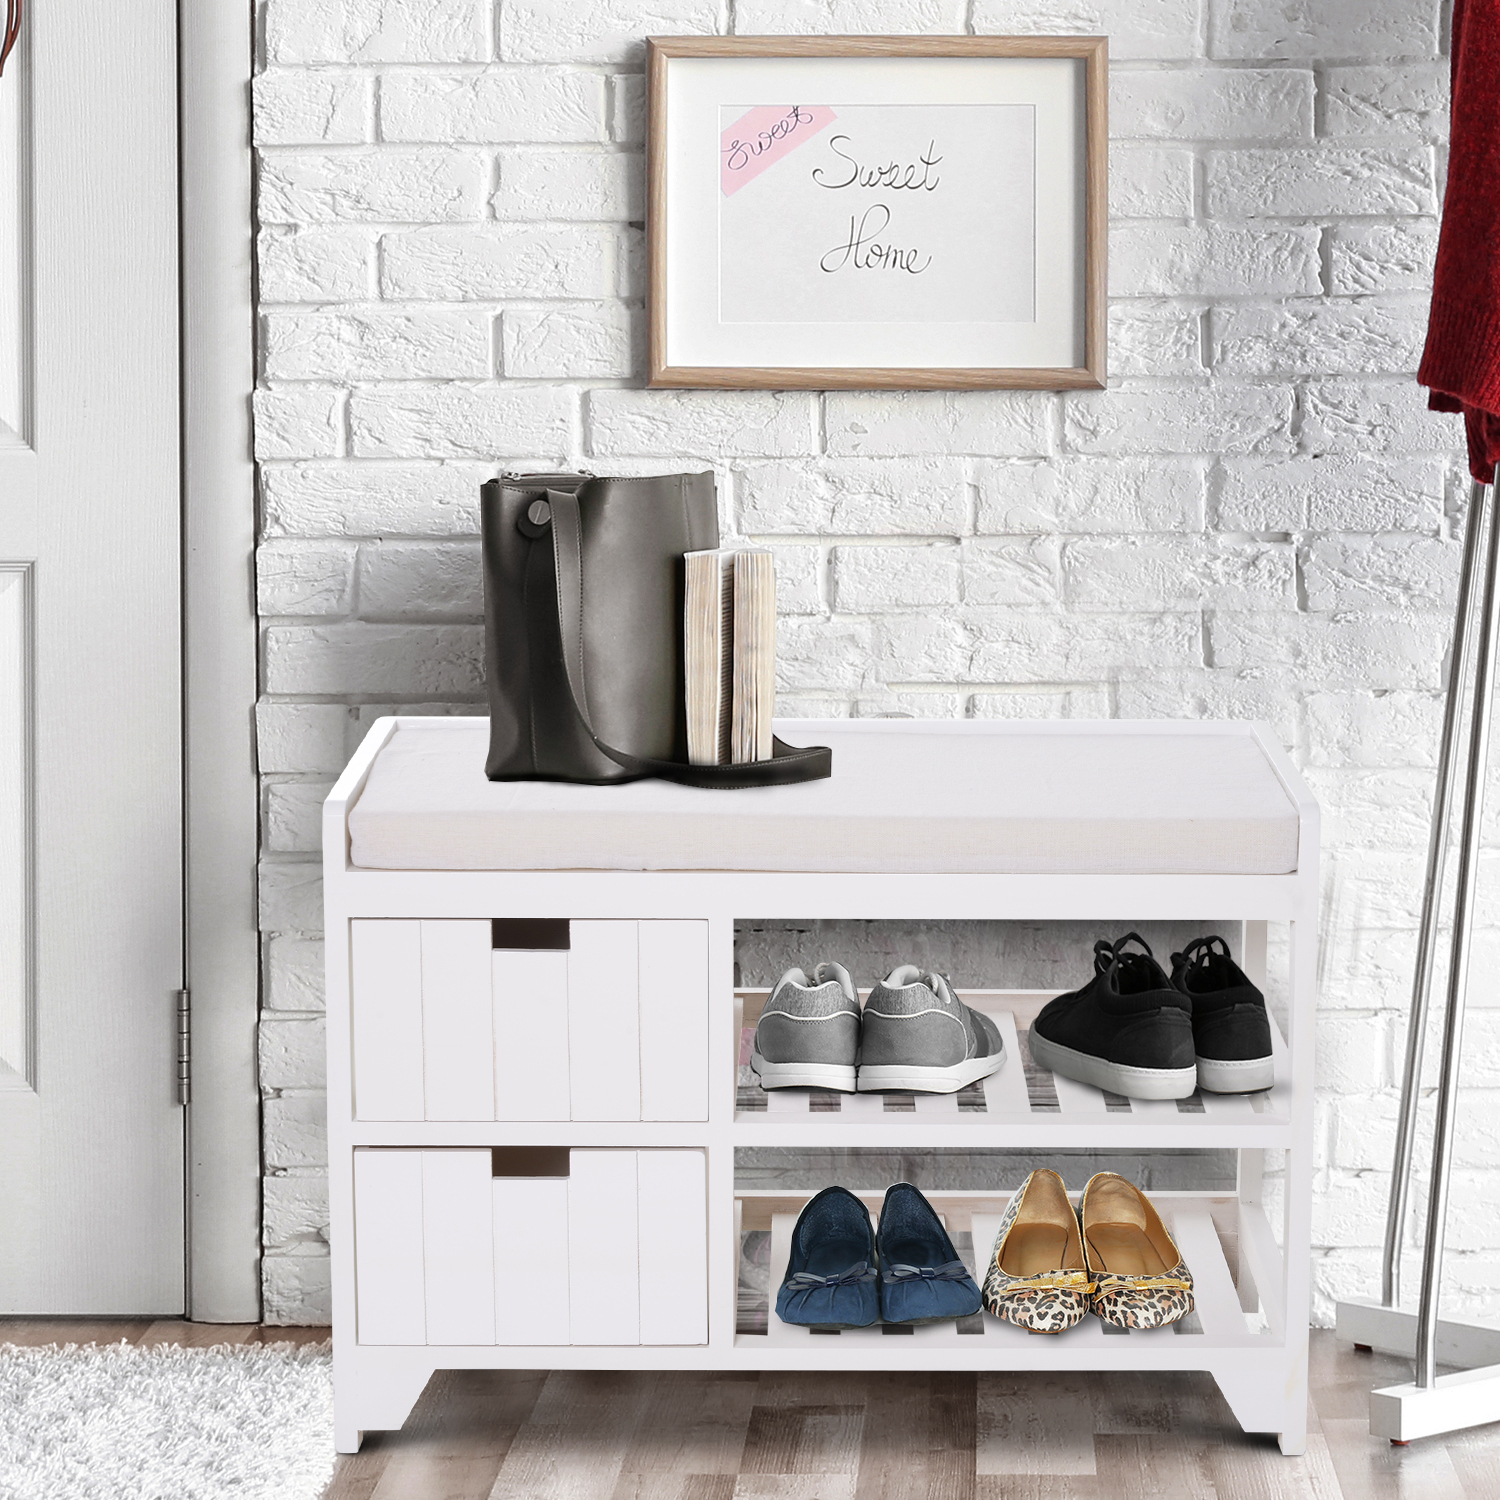 Rustic Country Hall Entryway Small Wooden Shelf Bench Pull Out Drawers Slatted 712190179847 Ebay